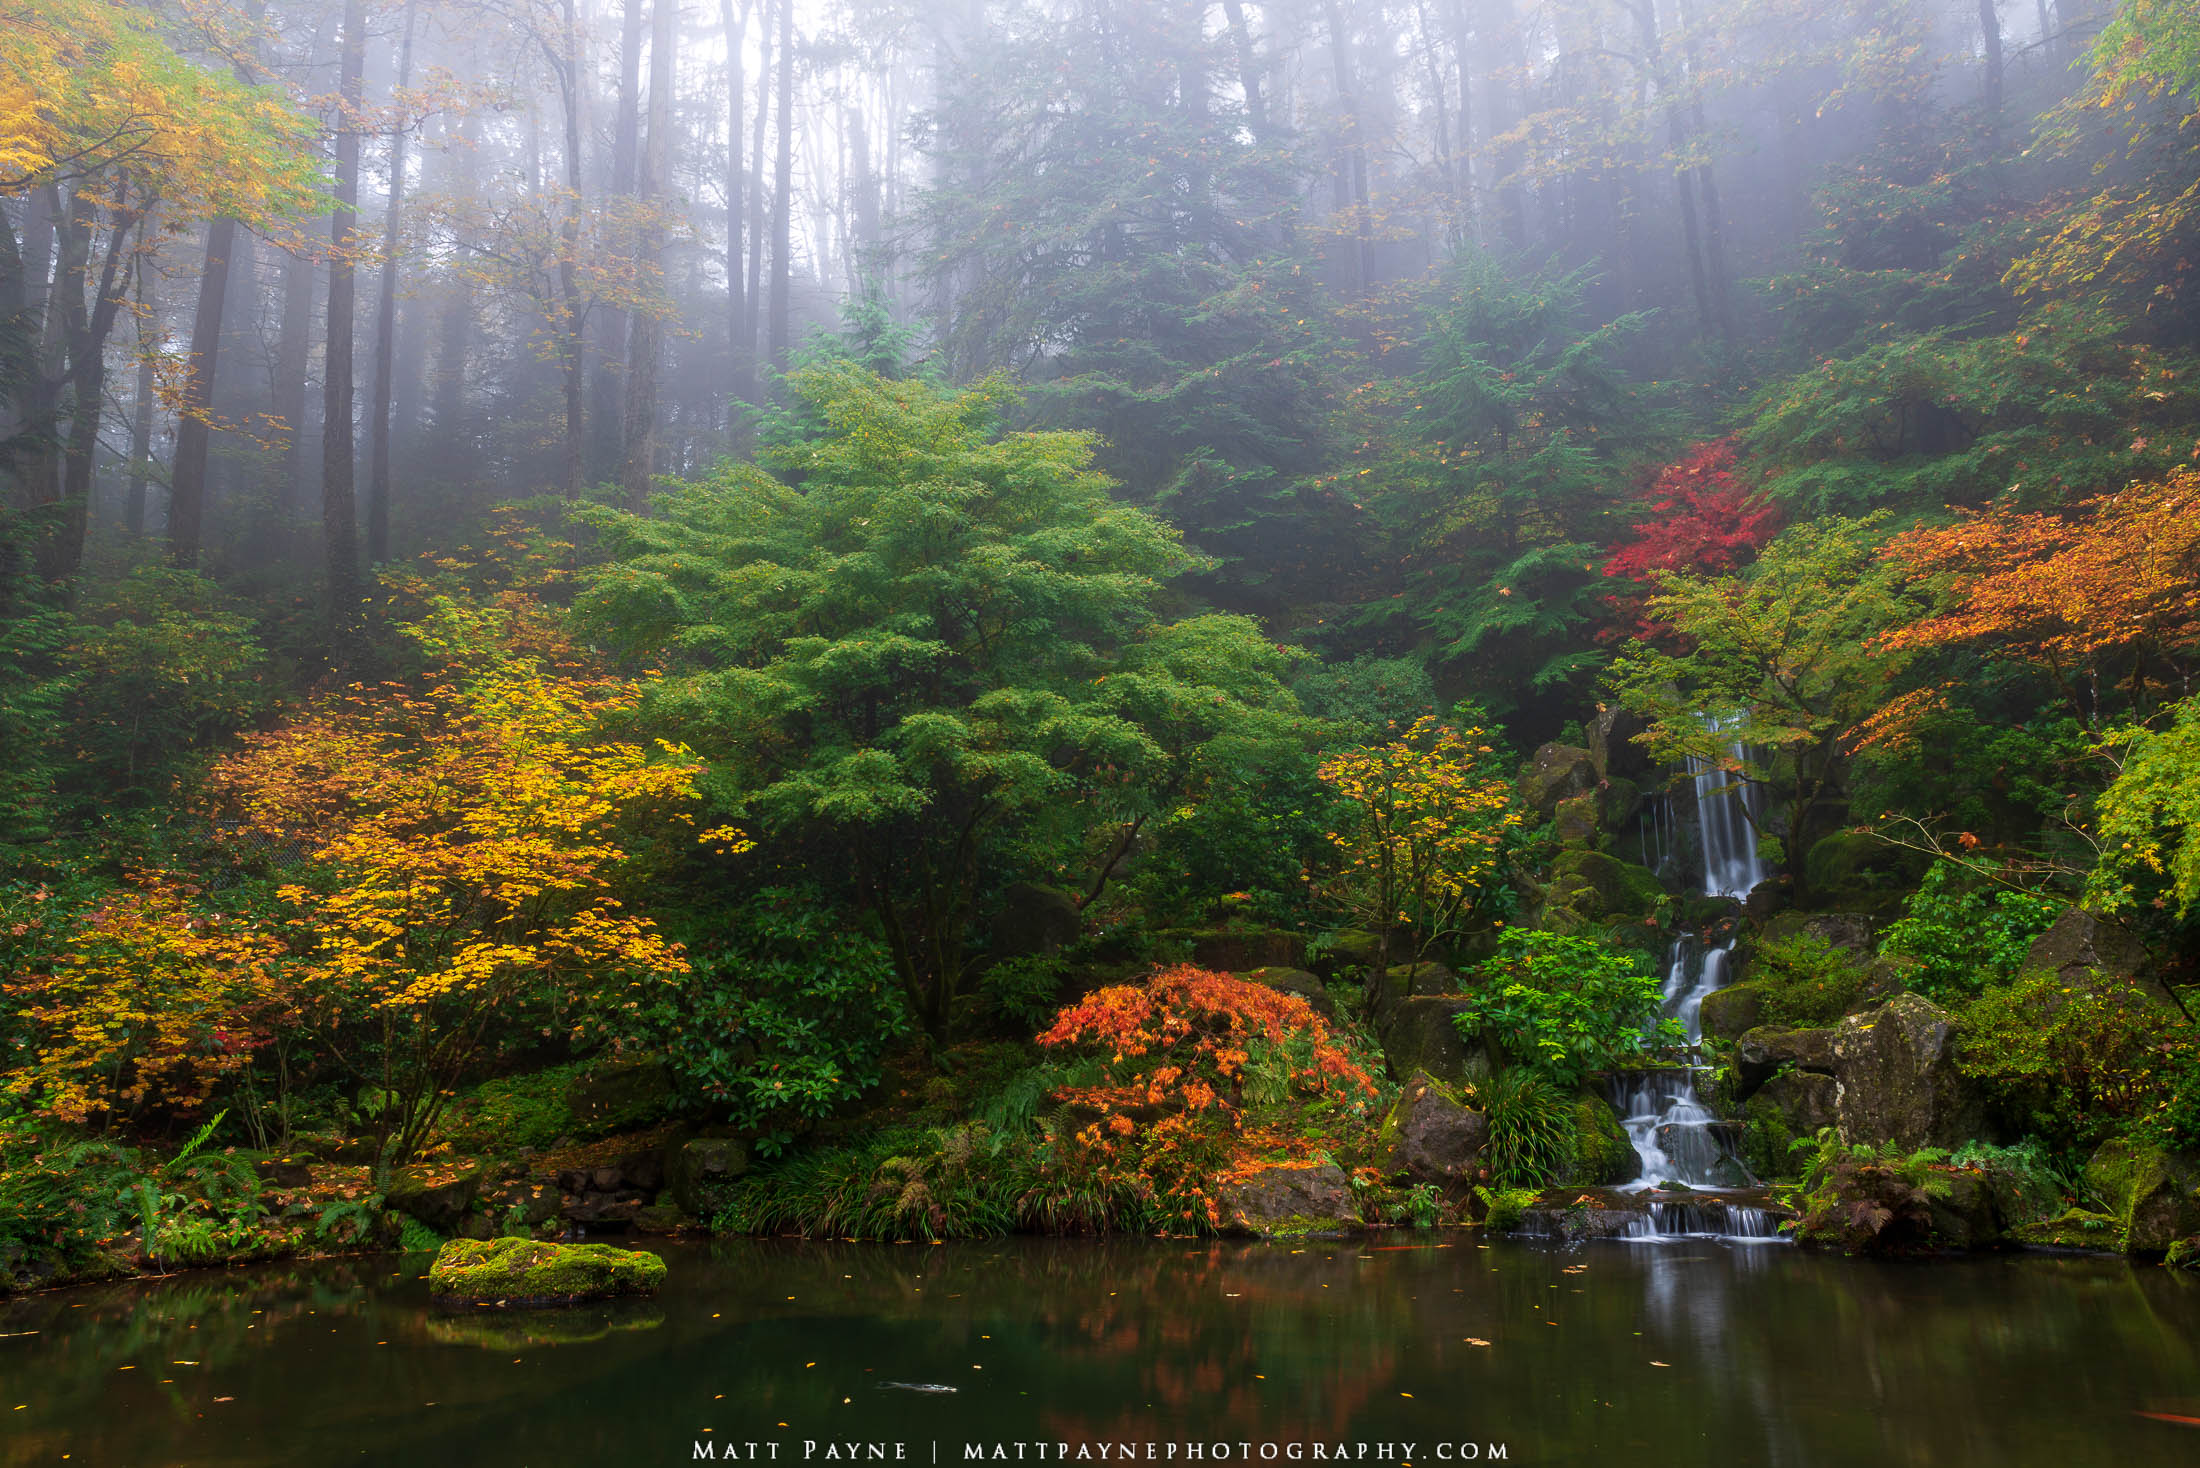 A waterfall at the Portland Japanese Gardens in autumn with fall colors on the foliage.  Photo © copyright by Matt Payne.